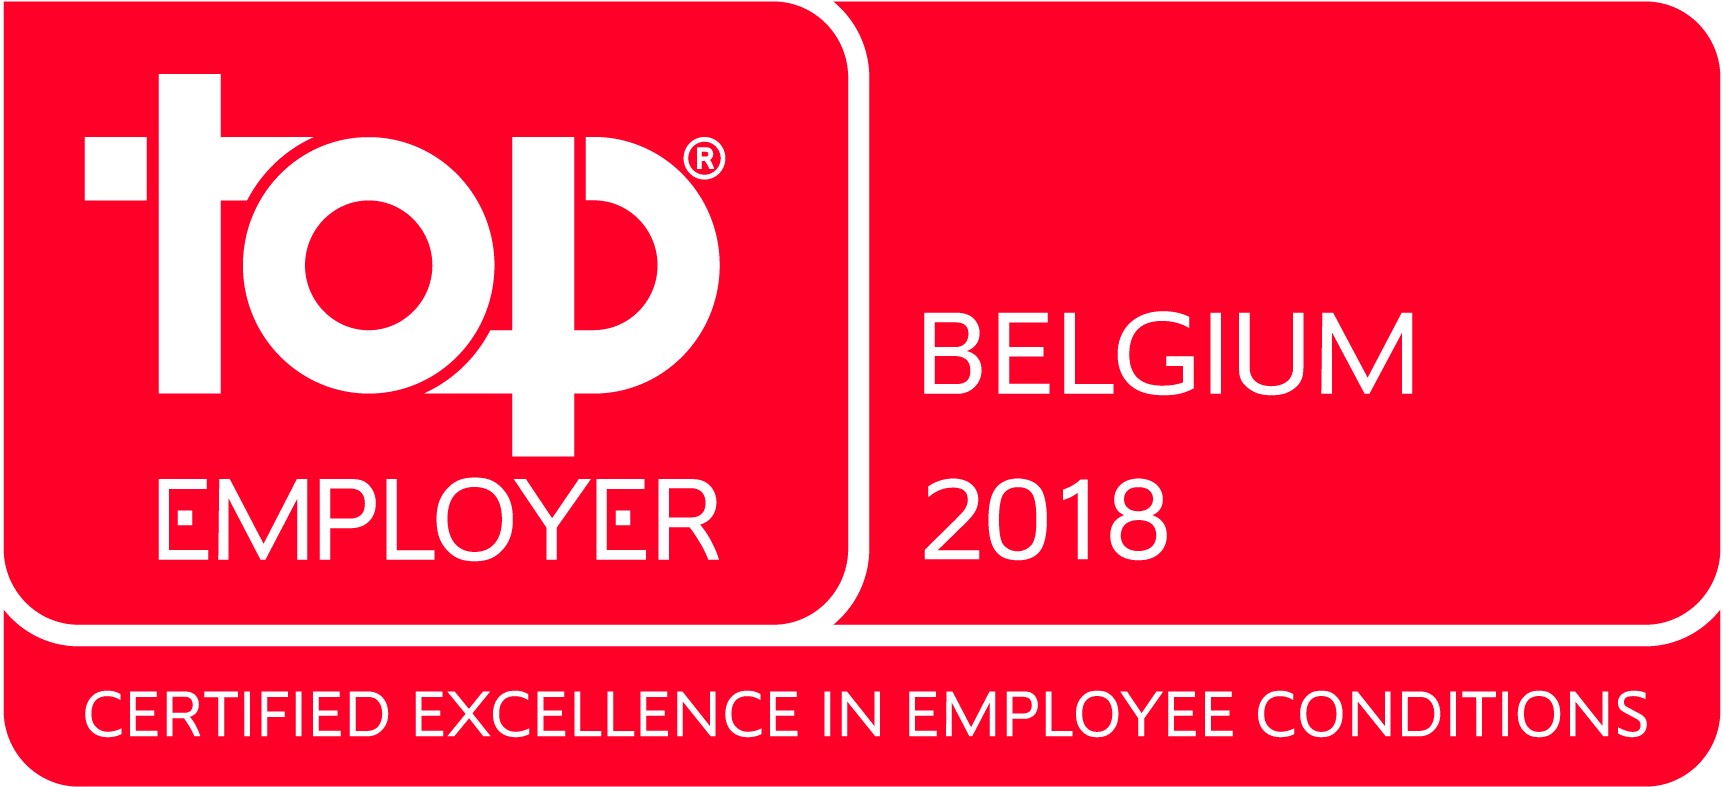 Top_Employer_Belgium_2018_english